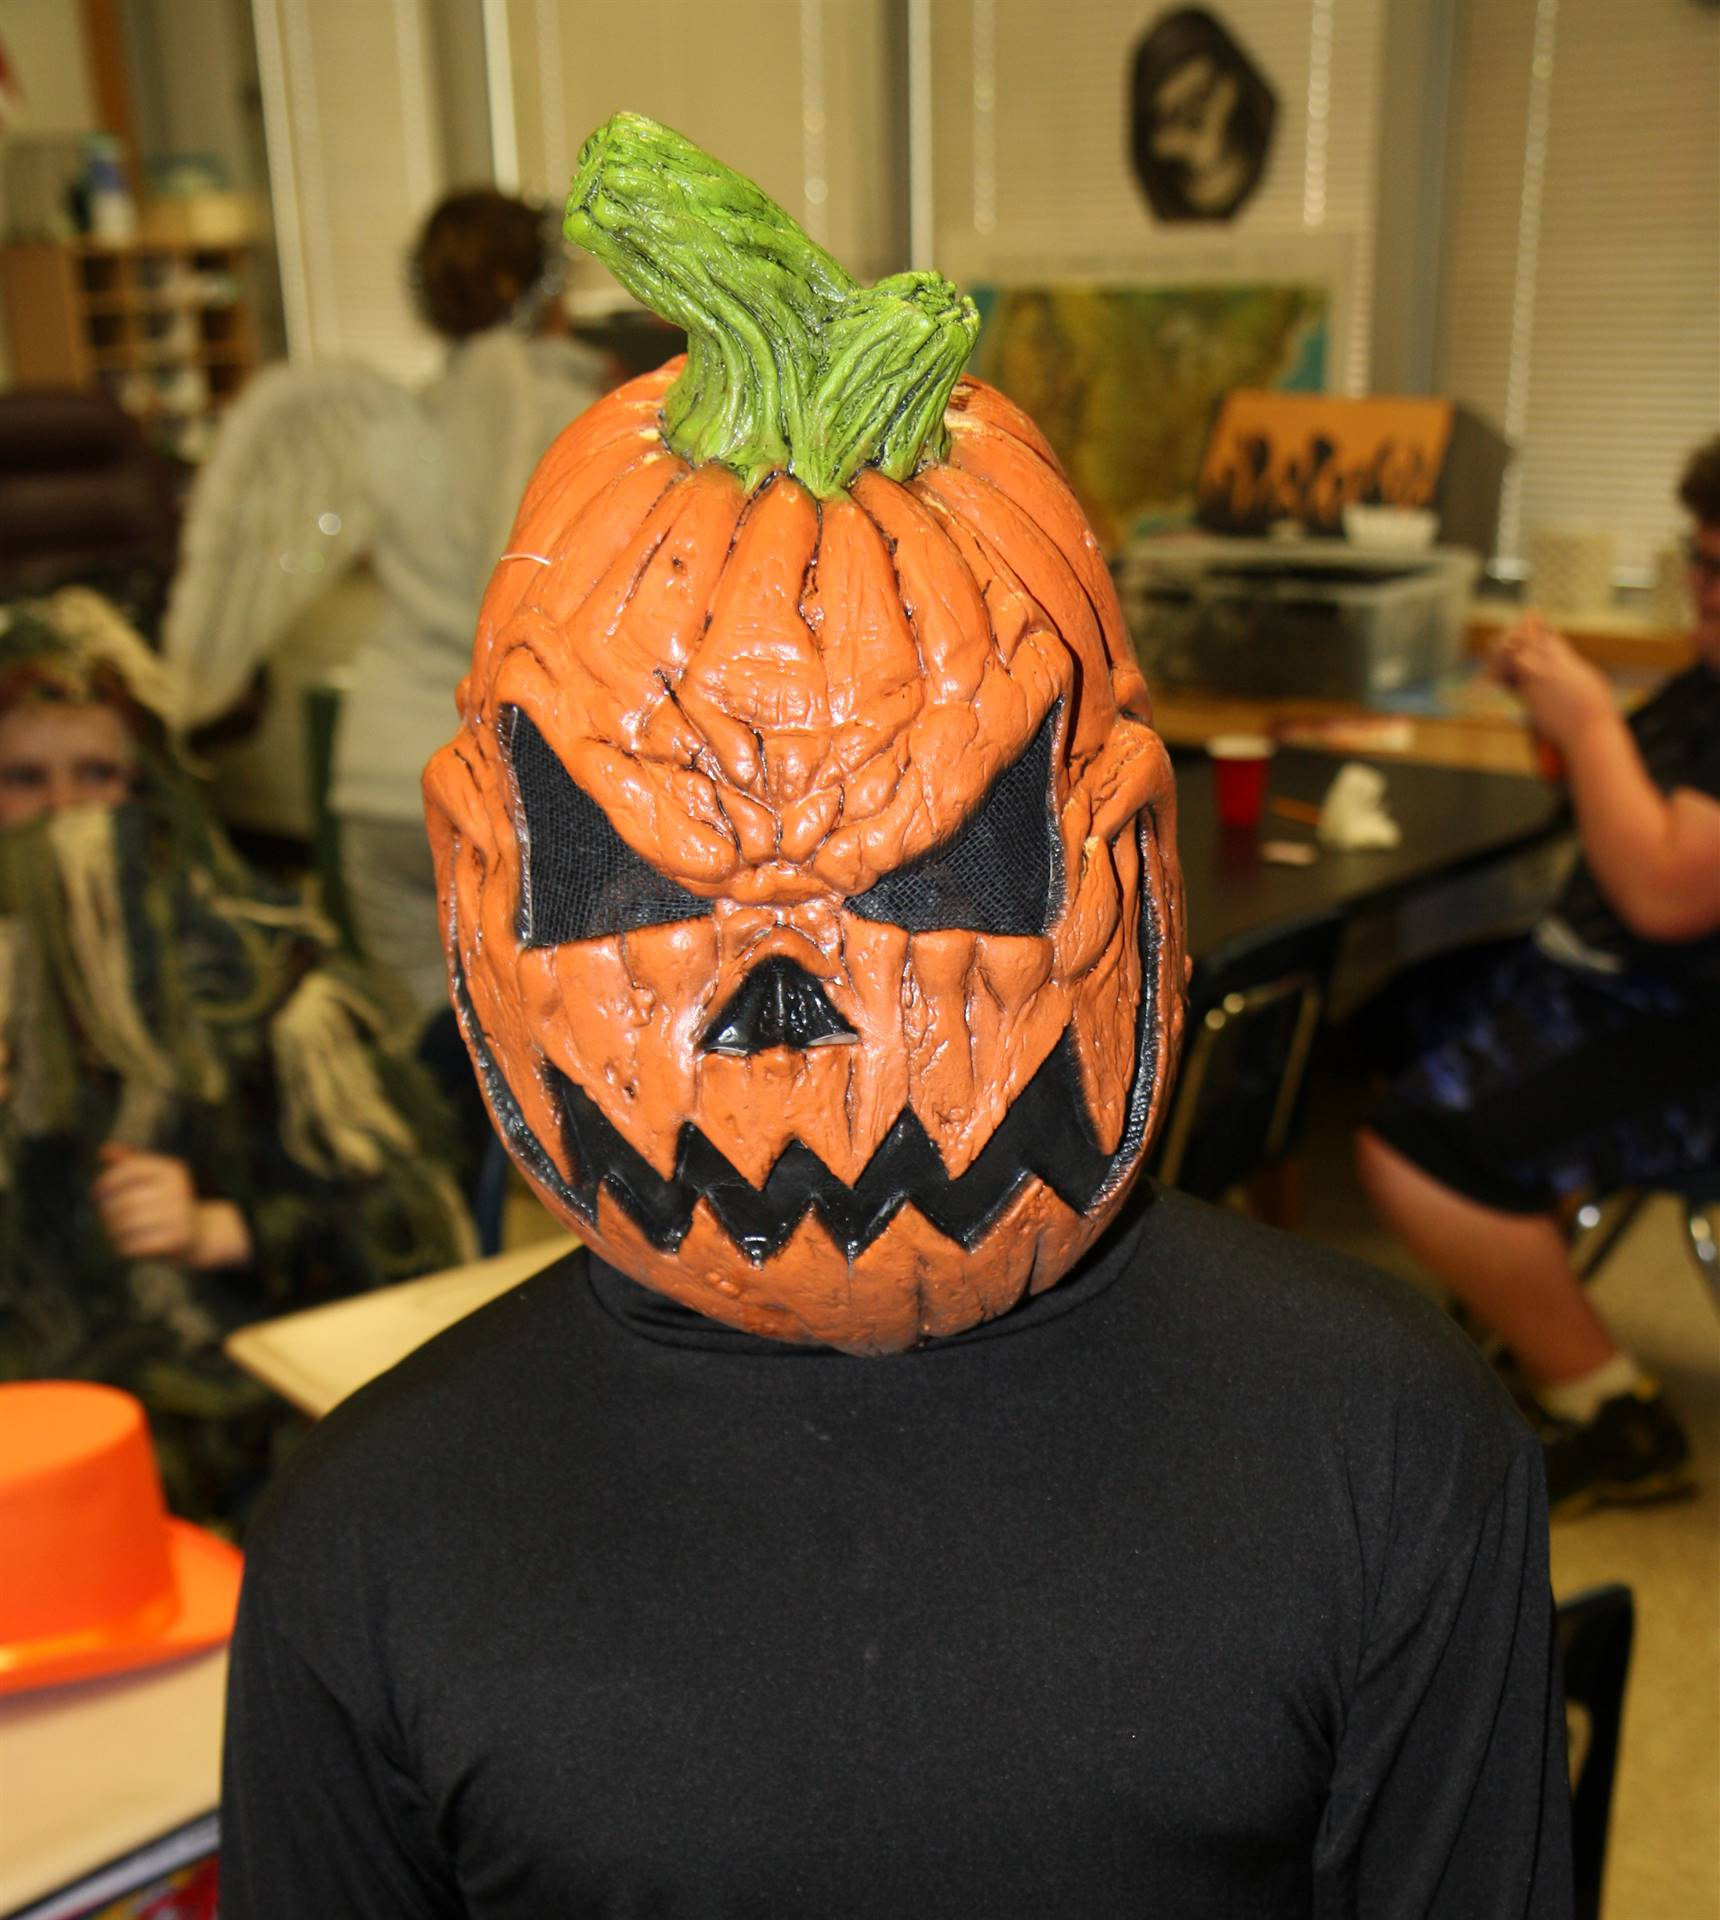 student dressed in spooky pumpkin head costume